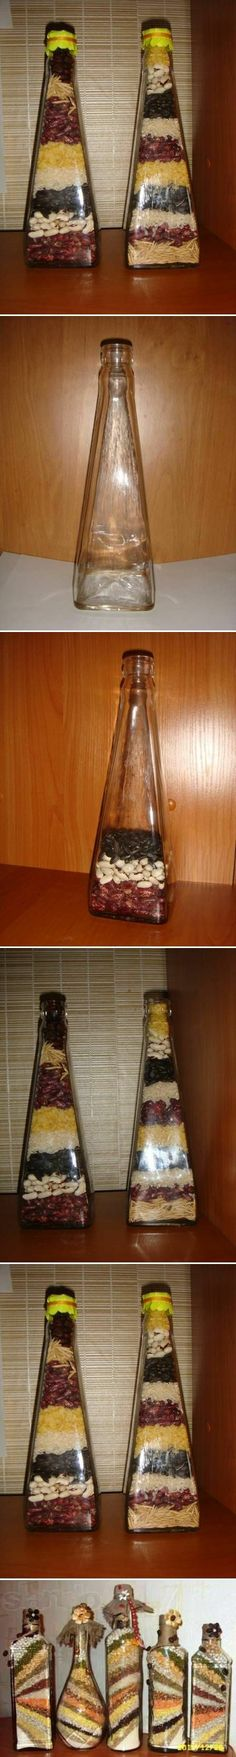 DIY Decorative Bottle with Seeds DIY Projects / UsefulDIY.com